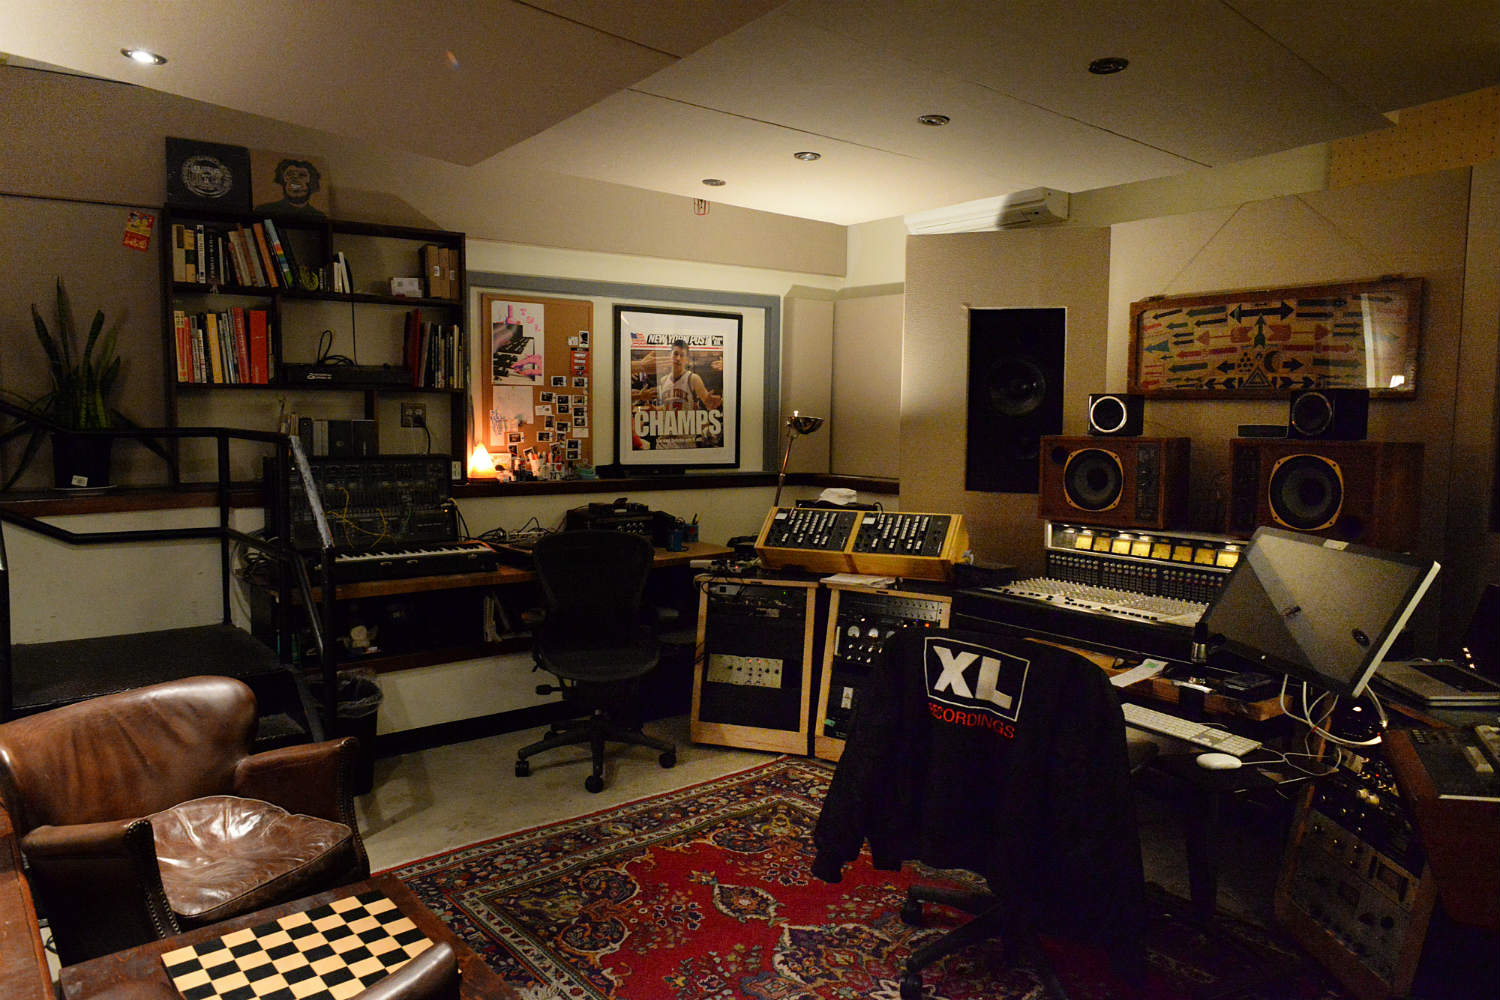 Jack Antonoff's XL Studios from his XL Recordings label, located in Soho, NYC, designed by WSDG. Control Room 2